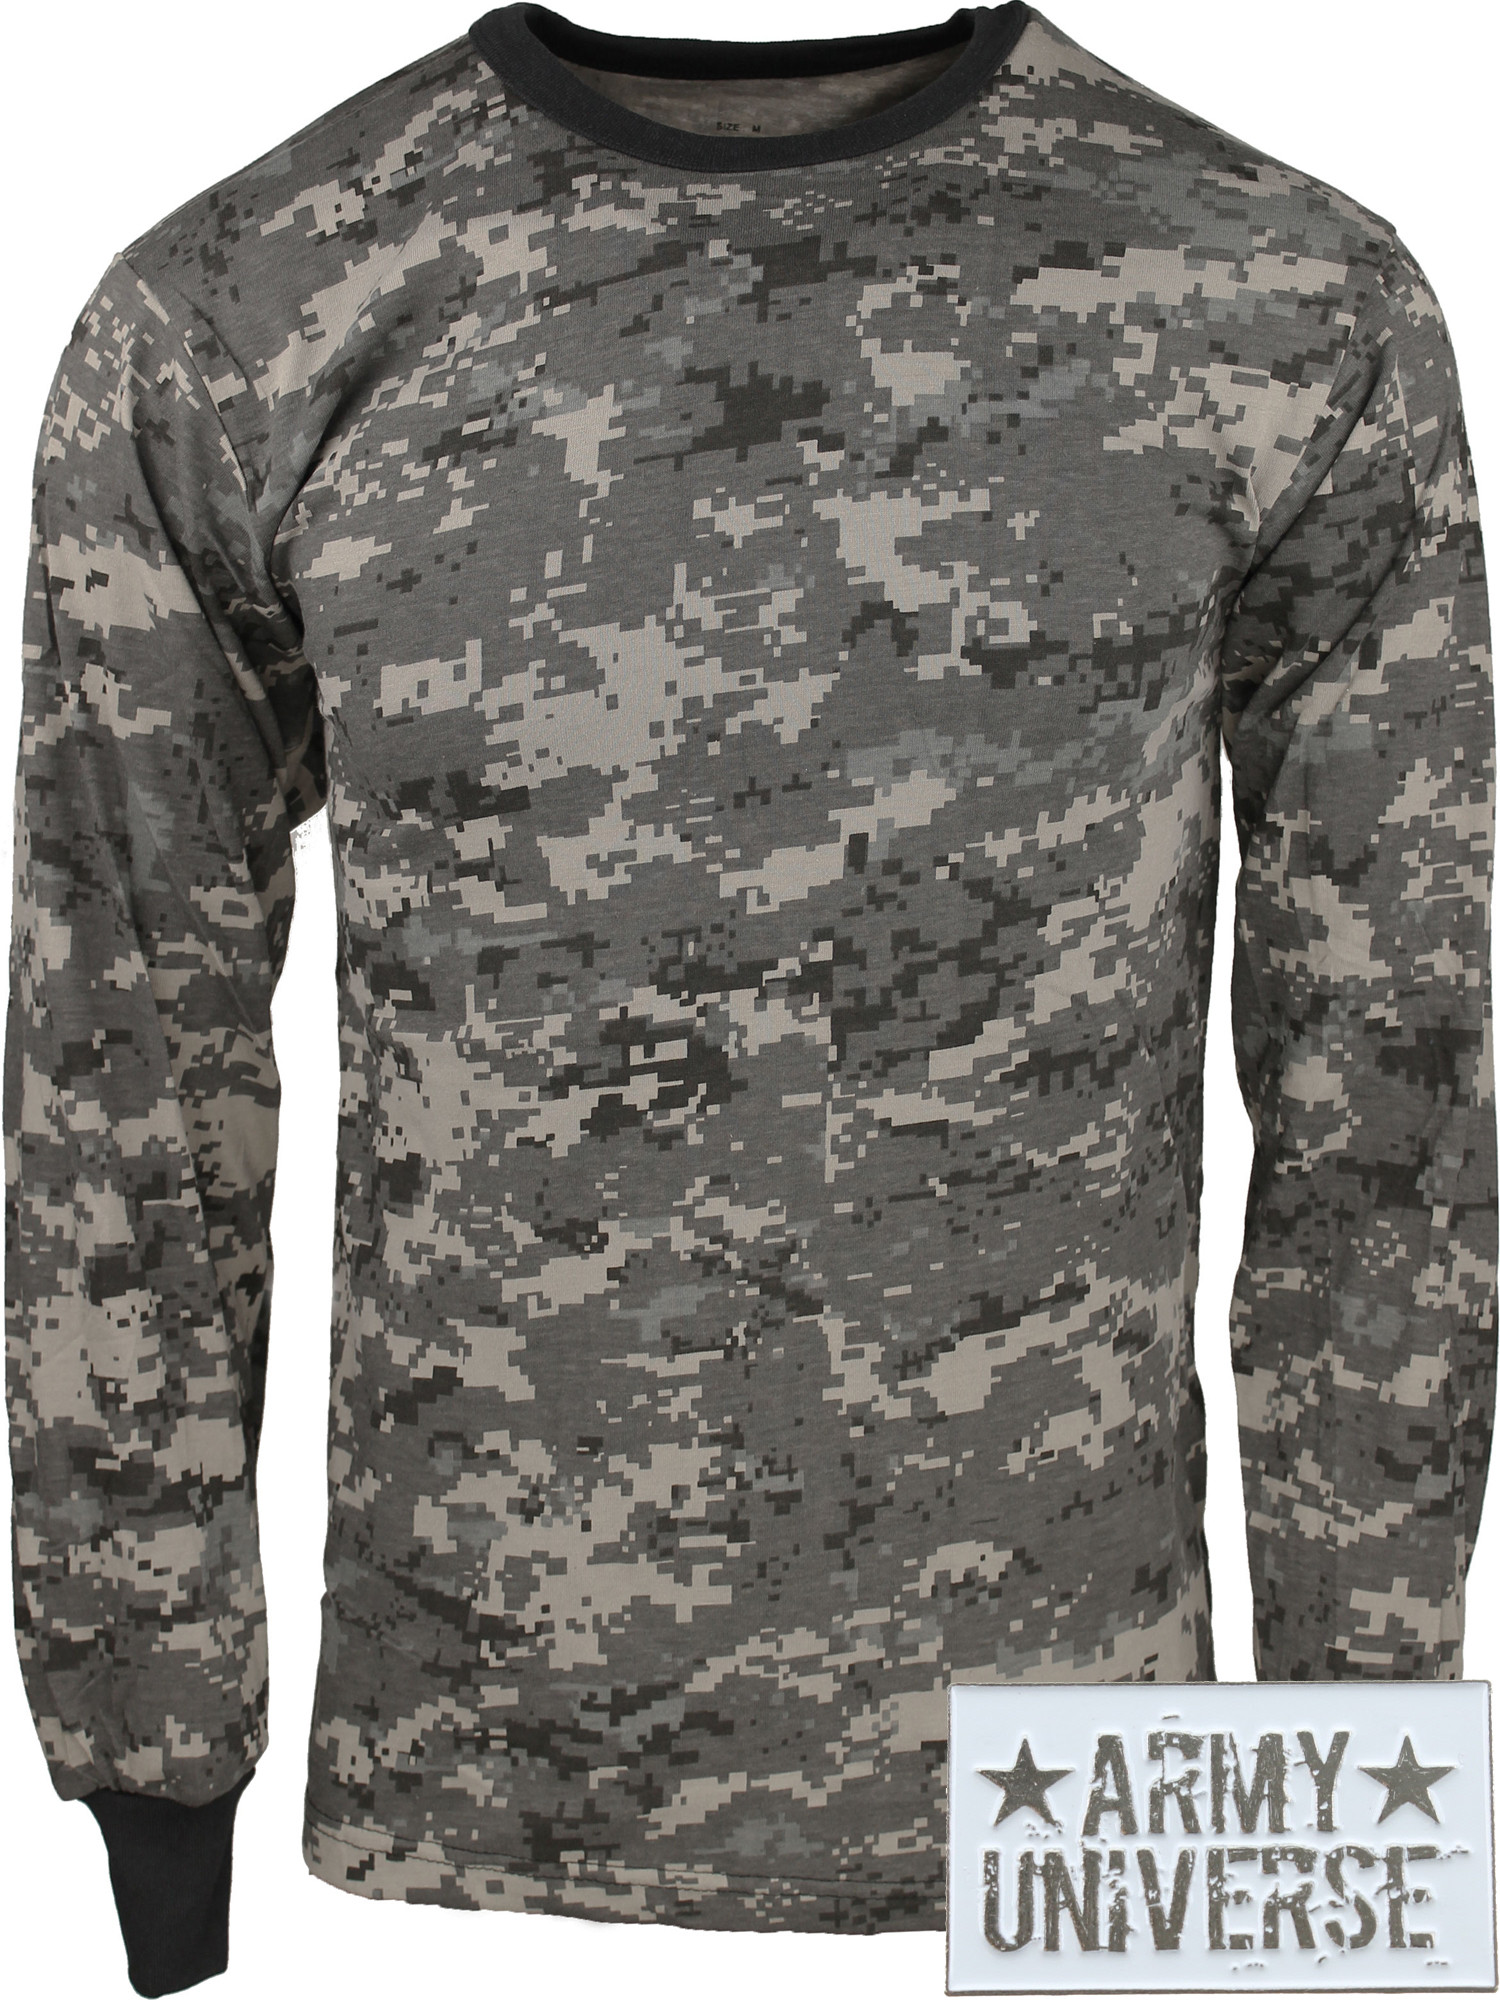 58fc03836de2 ... Subdued Urban Digital Camouflage Military Crewneck Long Sleeve T Shirt  w/ ArmyUniverse® Pin ...